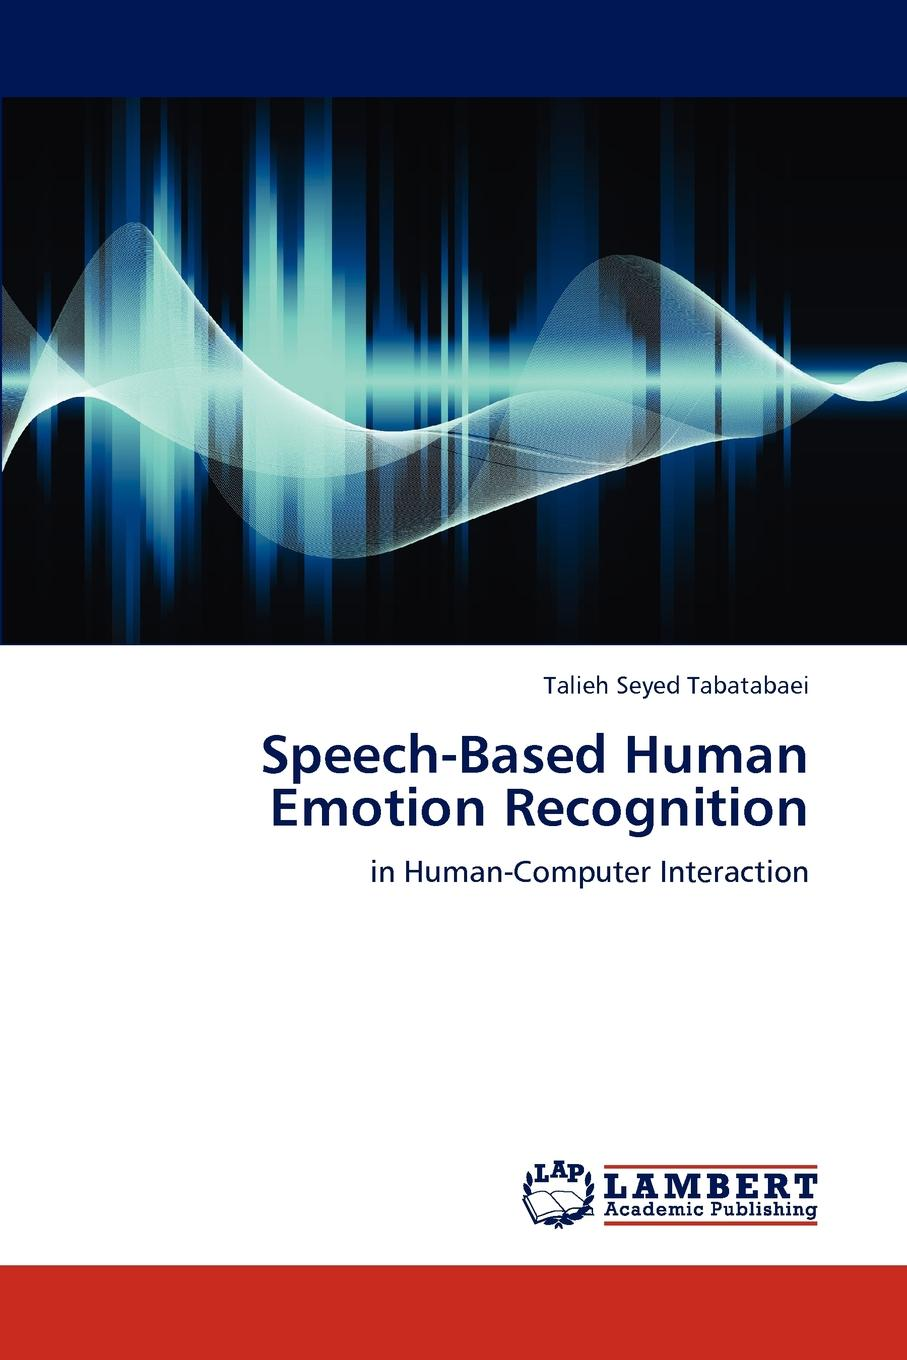 Talieh Seyed Tabatabaei Speech-Based Human Emotion Recognition keshet joseph automatic speech and speaker recognition large margin and kernel methods